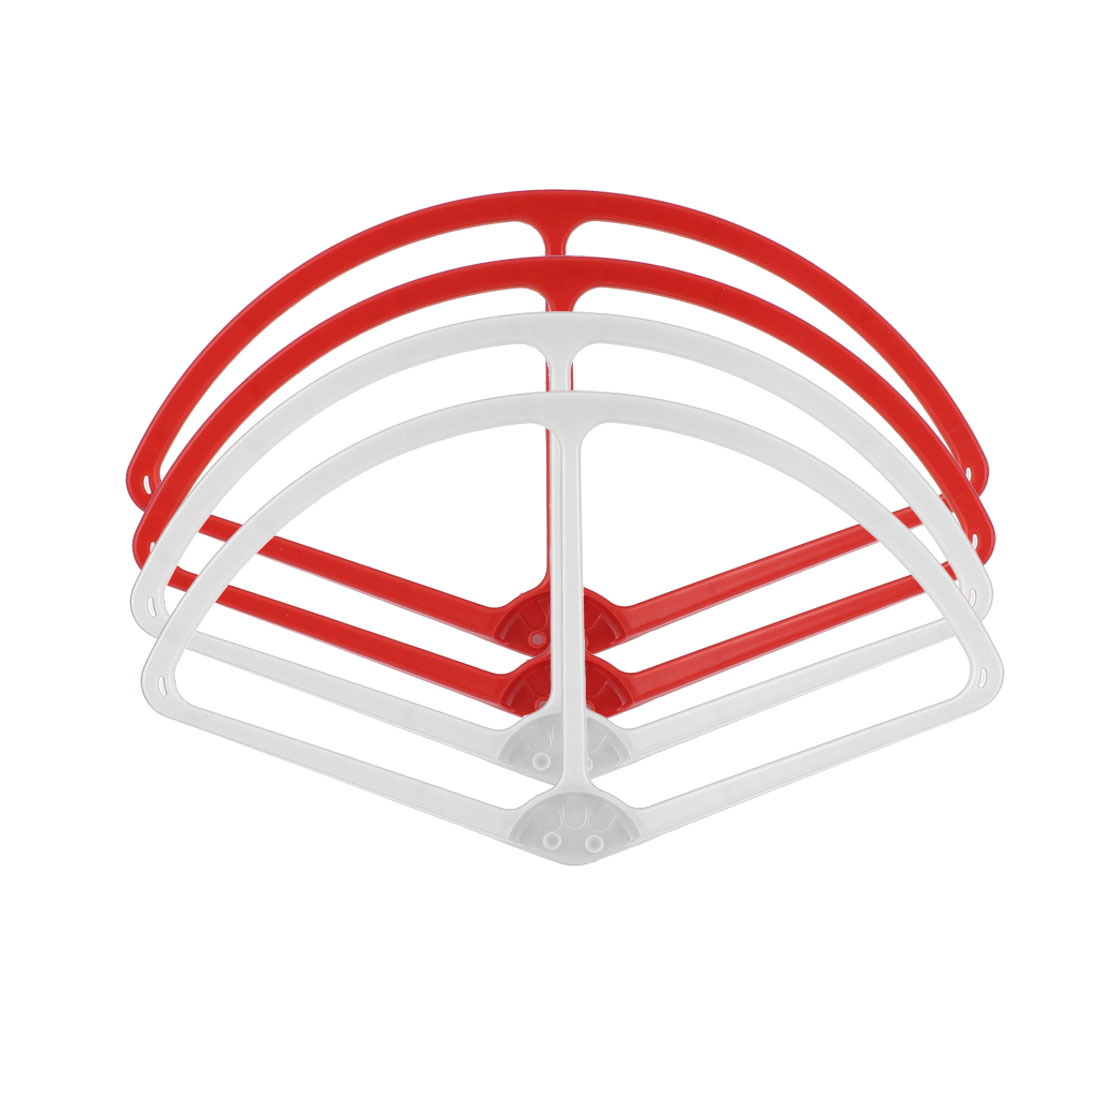 "9"" Propeller Prop Protector Guard Bumper Set Red White for DJI Phantom 2 Vision"